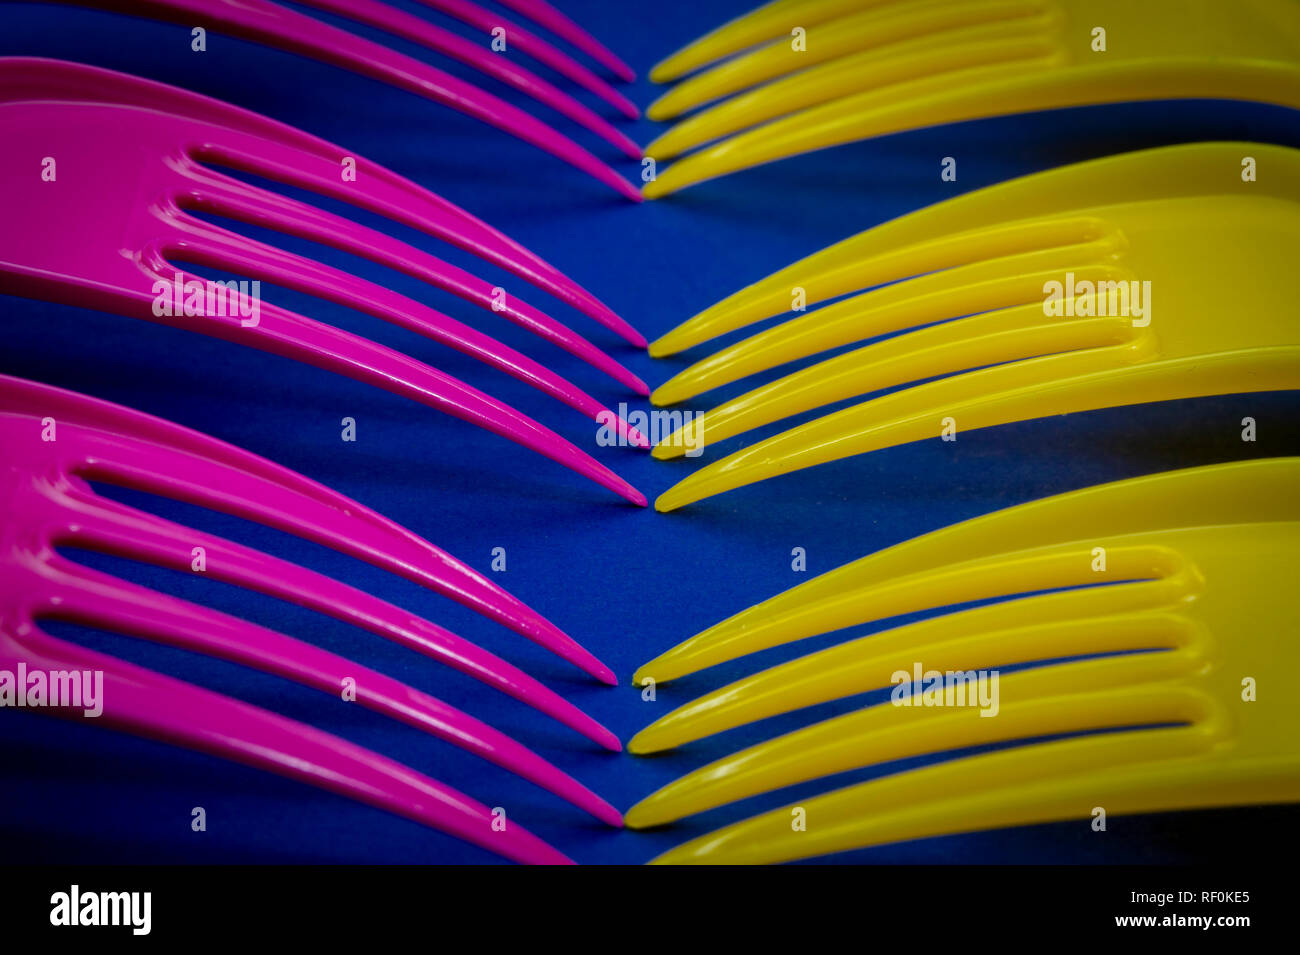 Yellow and pink cutlery plastic forks arranged on blue background. Color trends and plastic waste problem concept Stock Photo